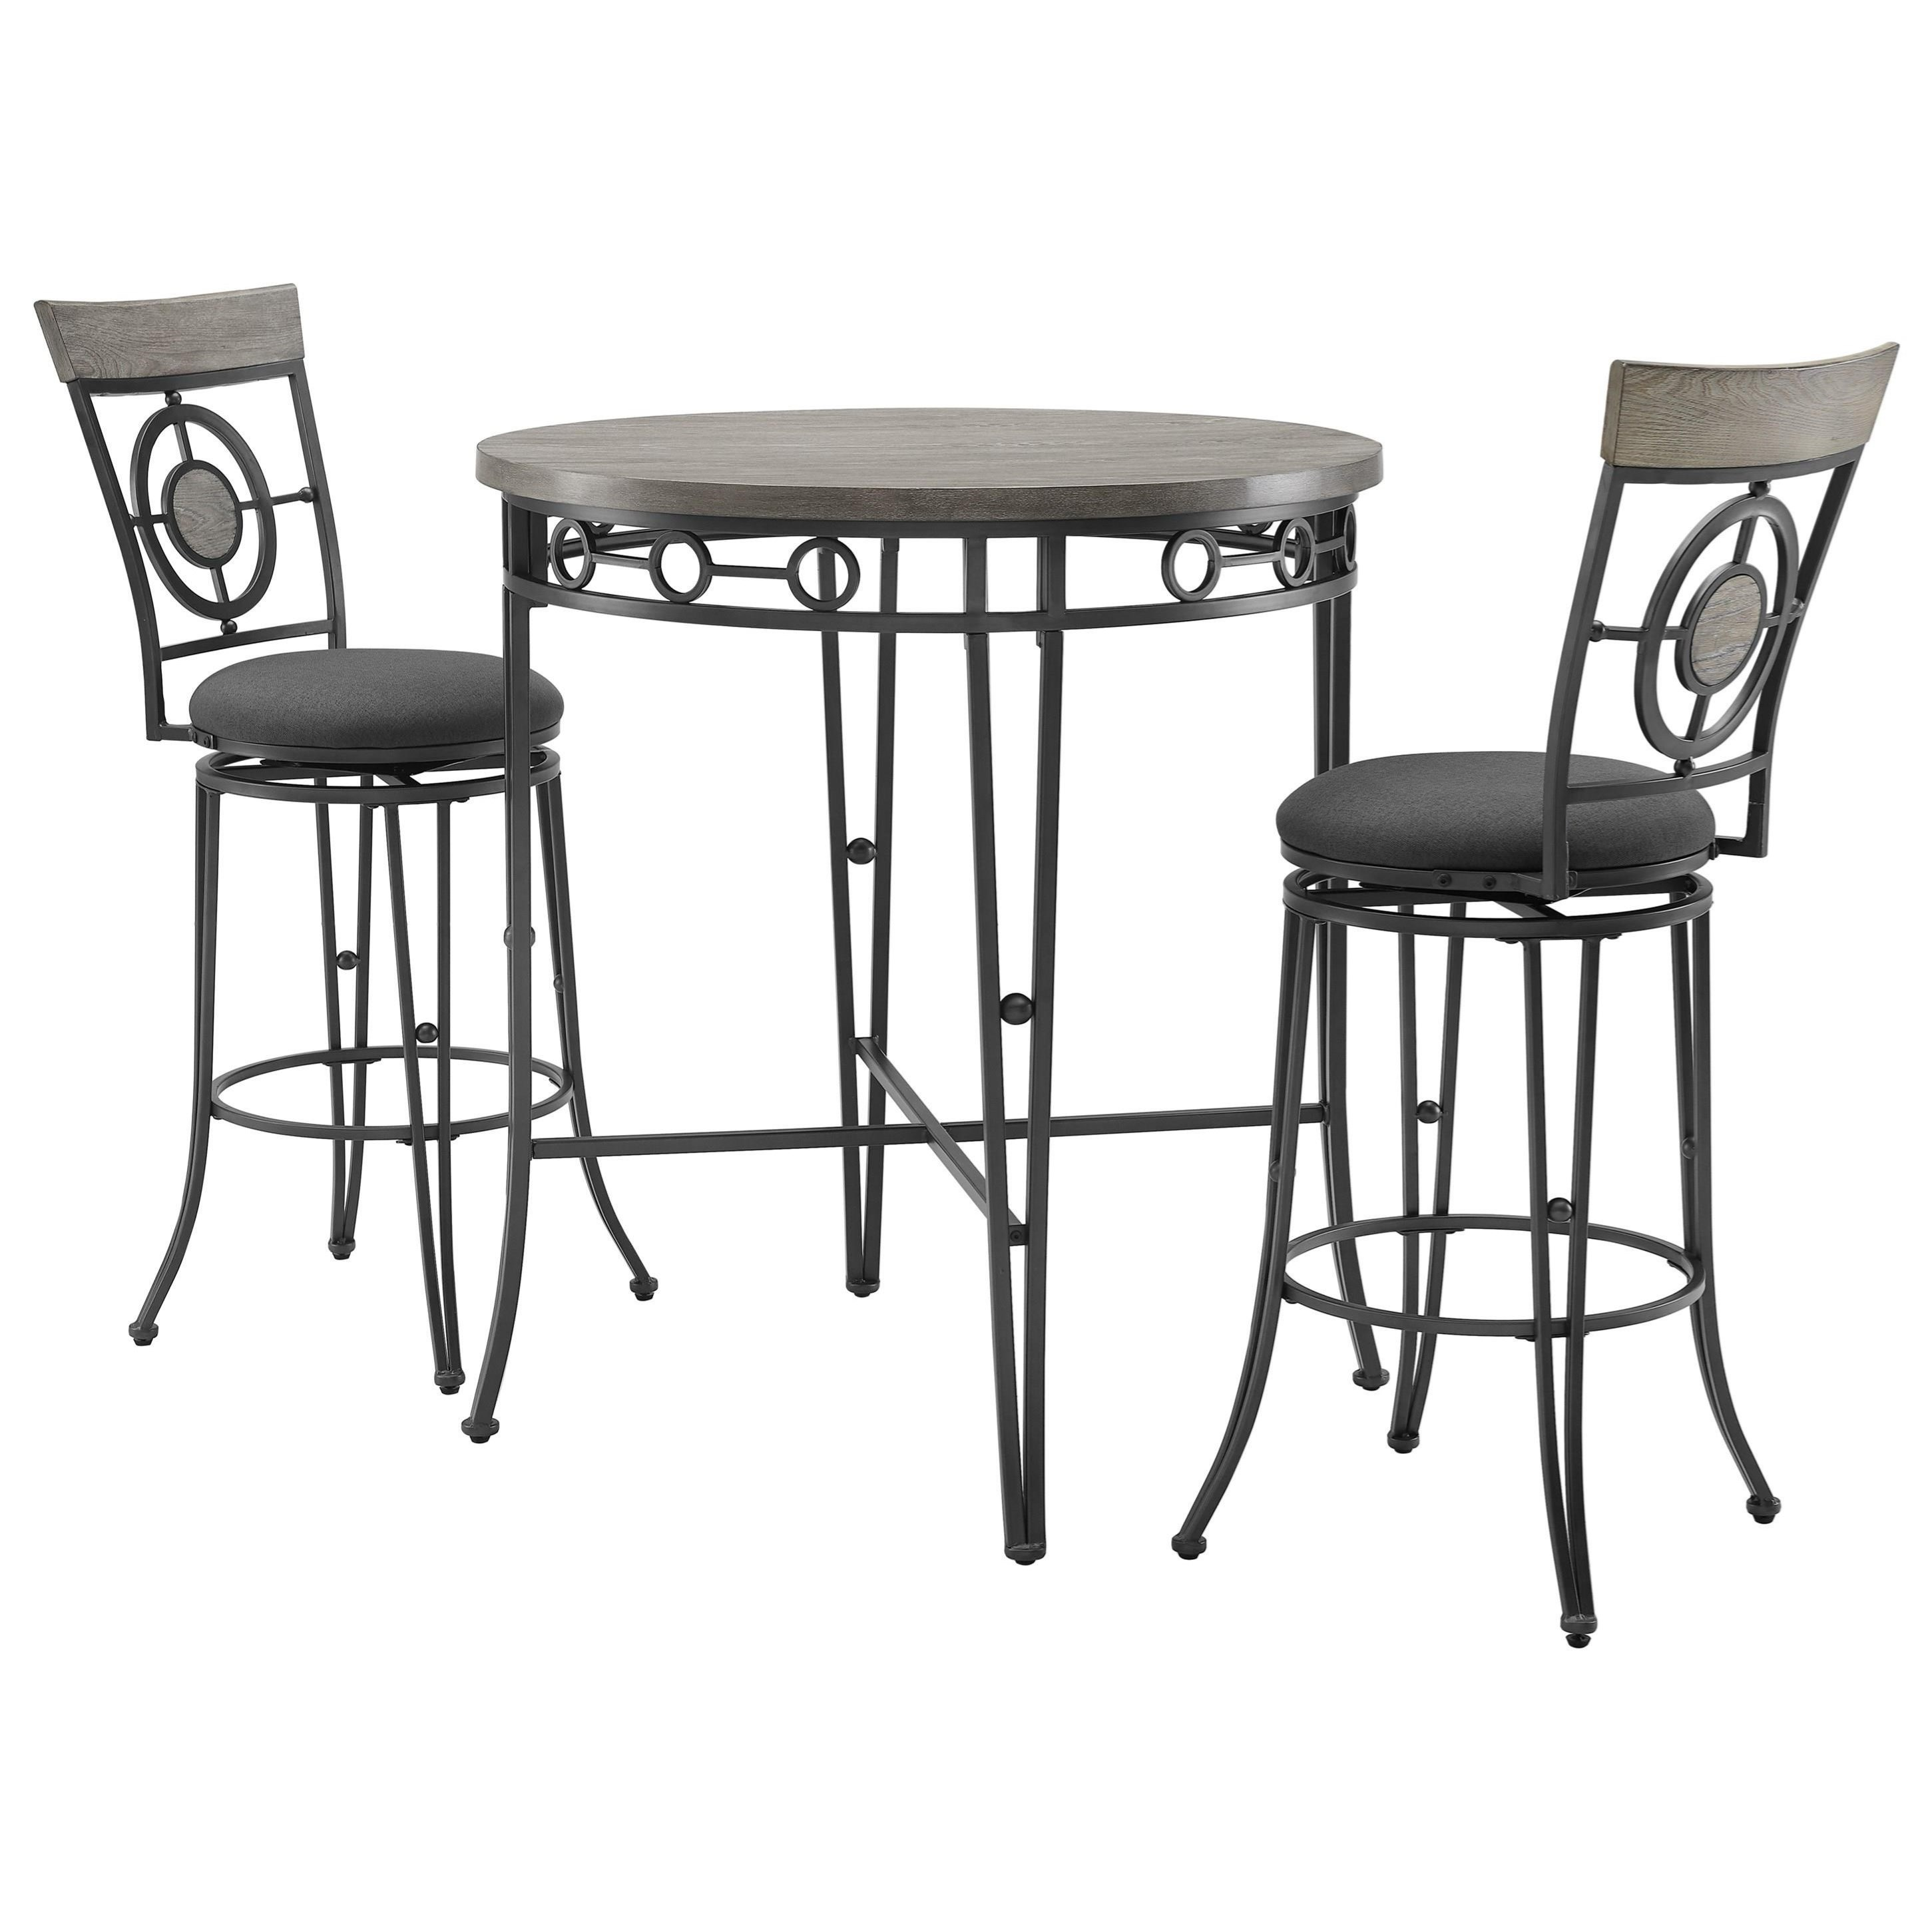 Barker 3-Piece Pub Table and Chair Set by Powell at Pedigo Furniture